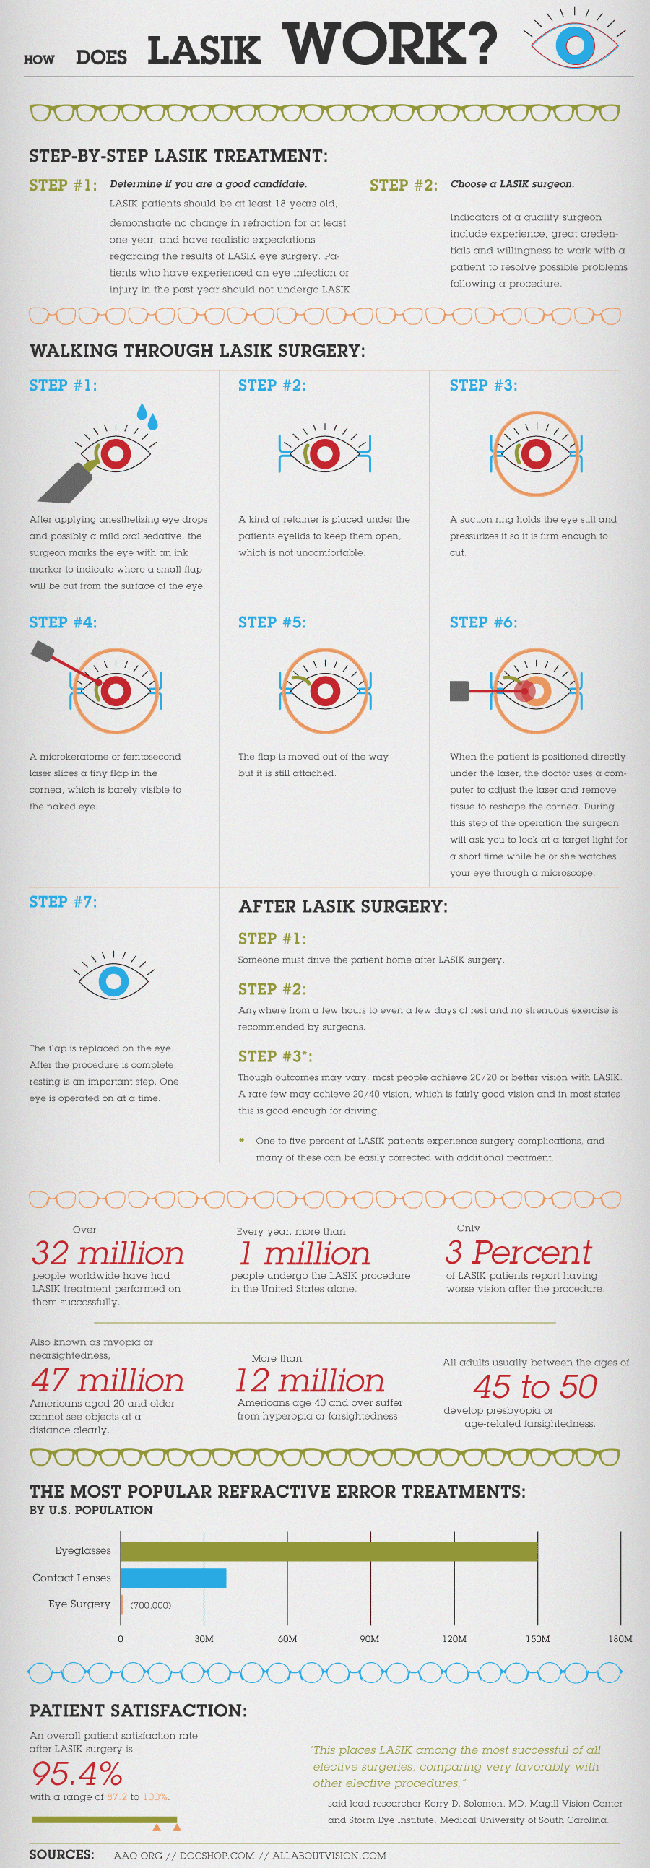 How Does LASIK Work?